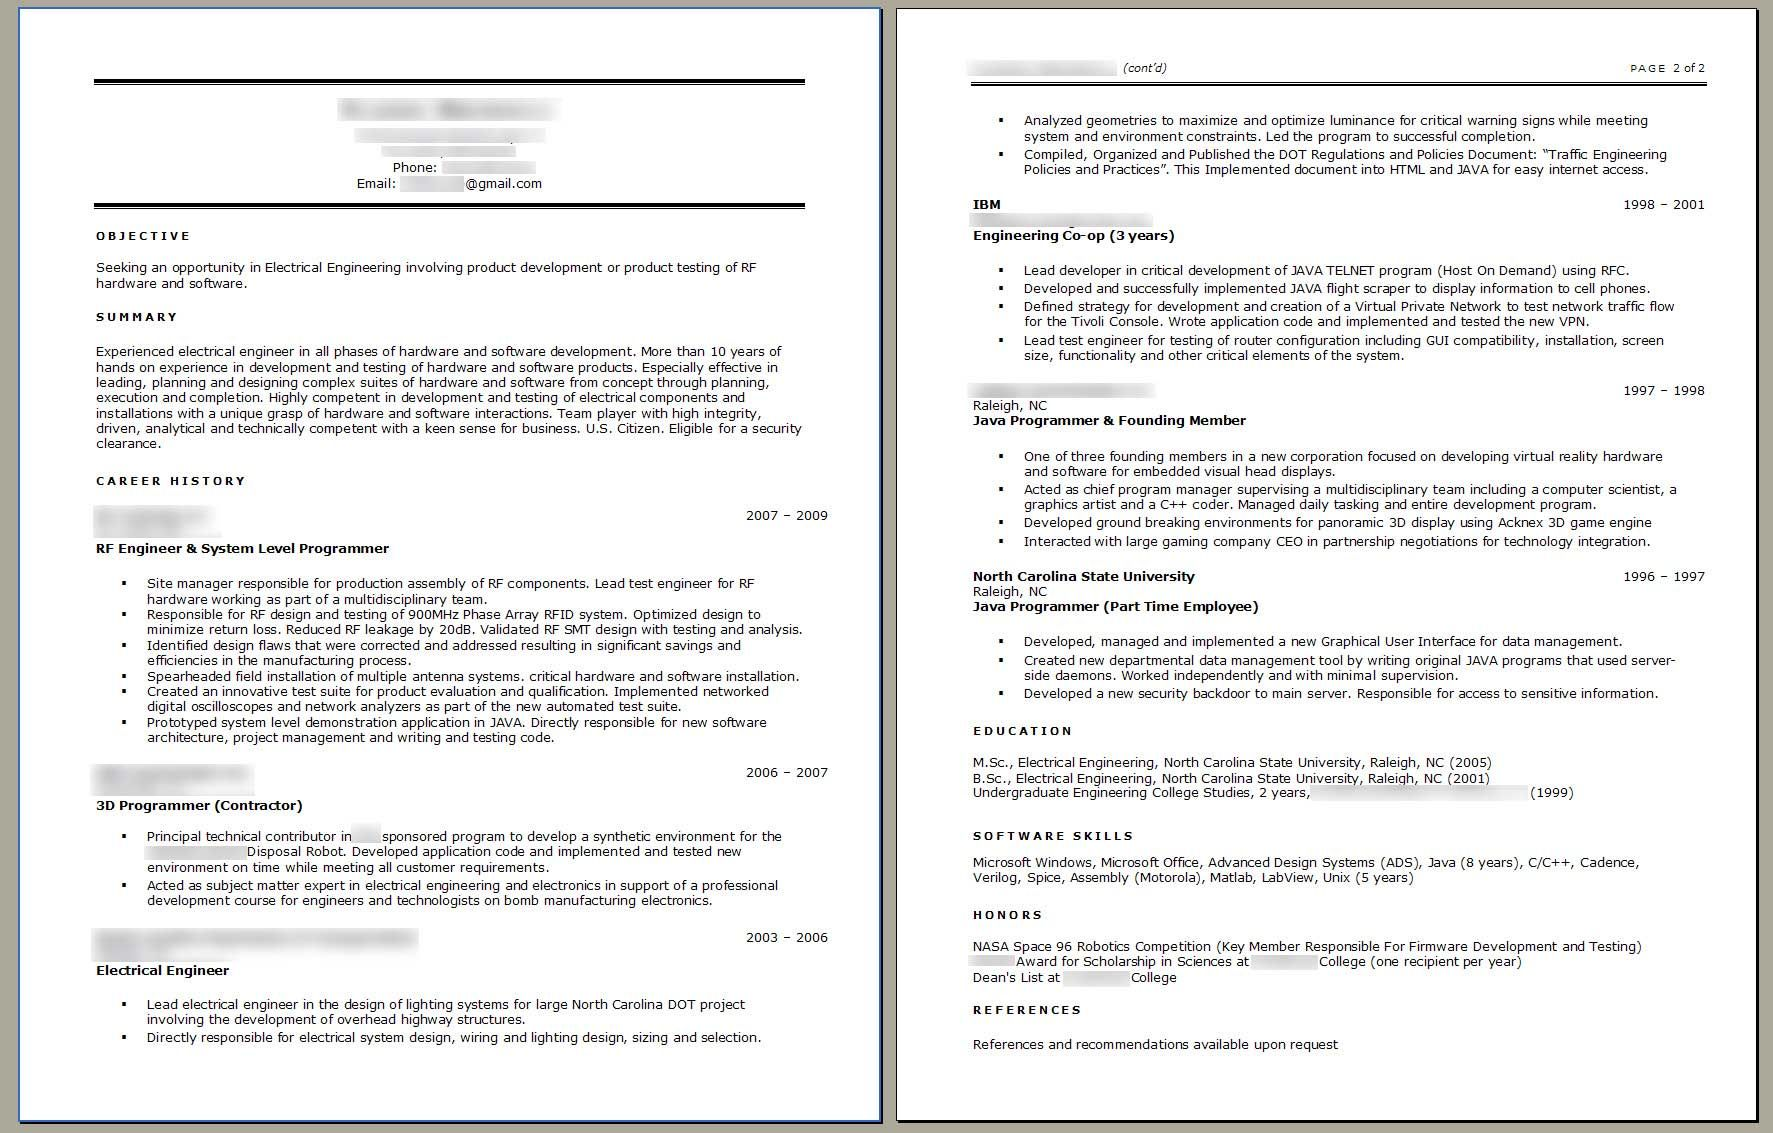 Electrical Engineer Resume Example - http://www.resumecareer.info ...